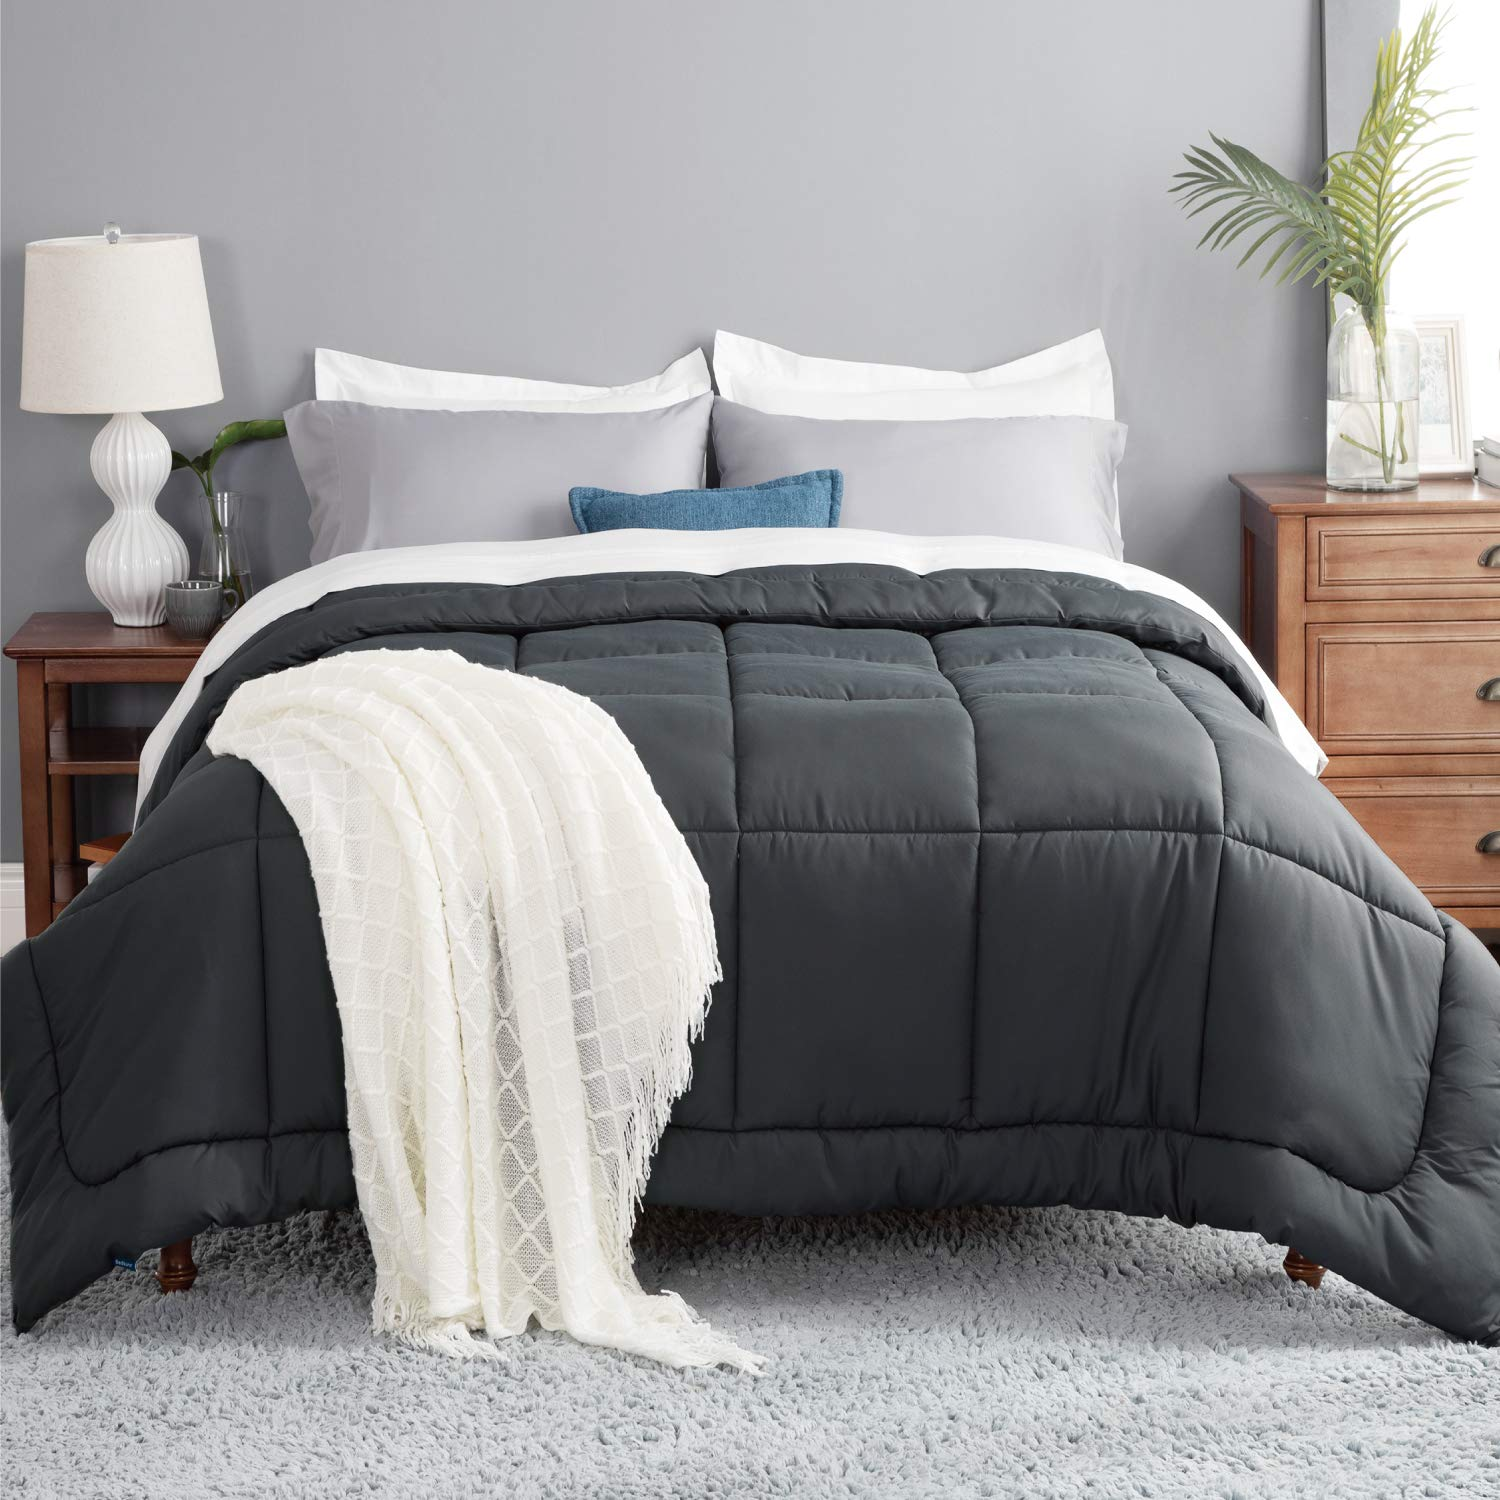 Bedsure Grey Comforter Twin Duvet Insert - Quilted Bedding Comforters for Twin Bed with Corner Tabs